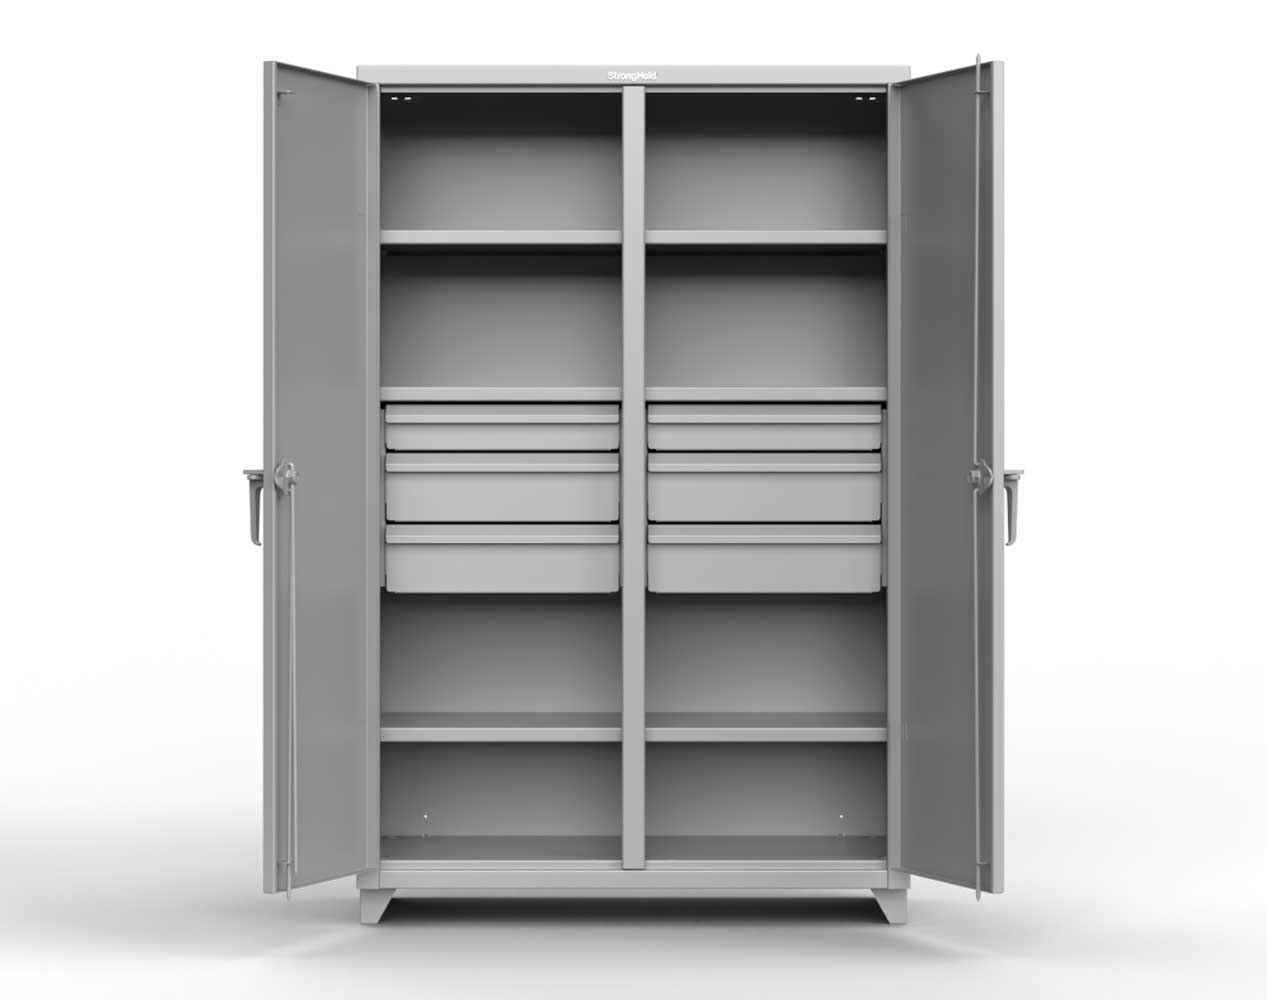 Extra Heavy Duty 12 GA Double Shift Cabinet with 10 Drawers, 6 Shelves – 72 In. W x 24 In. D x 78 In. H